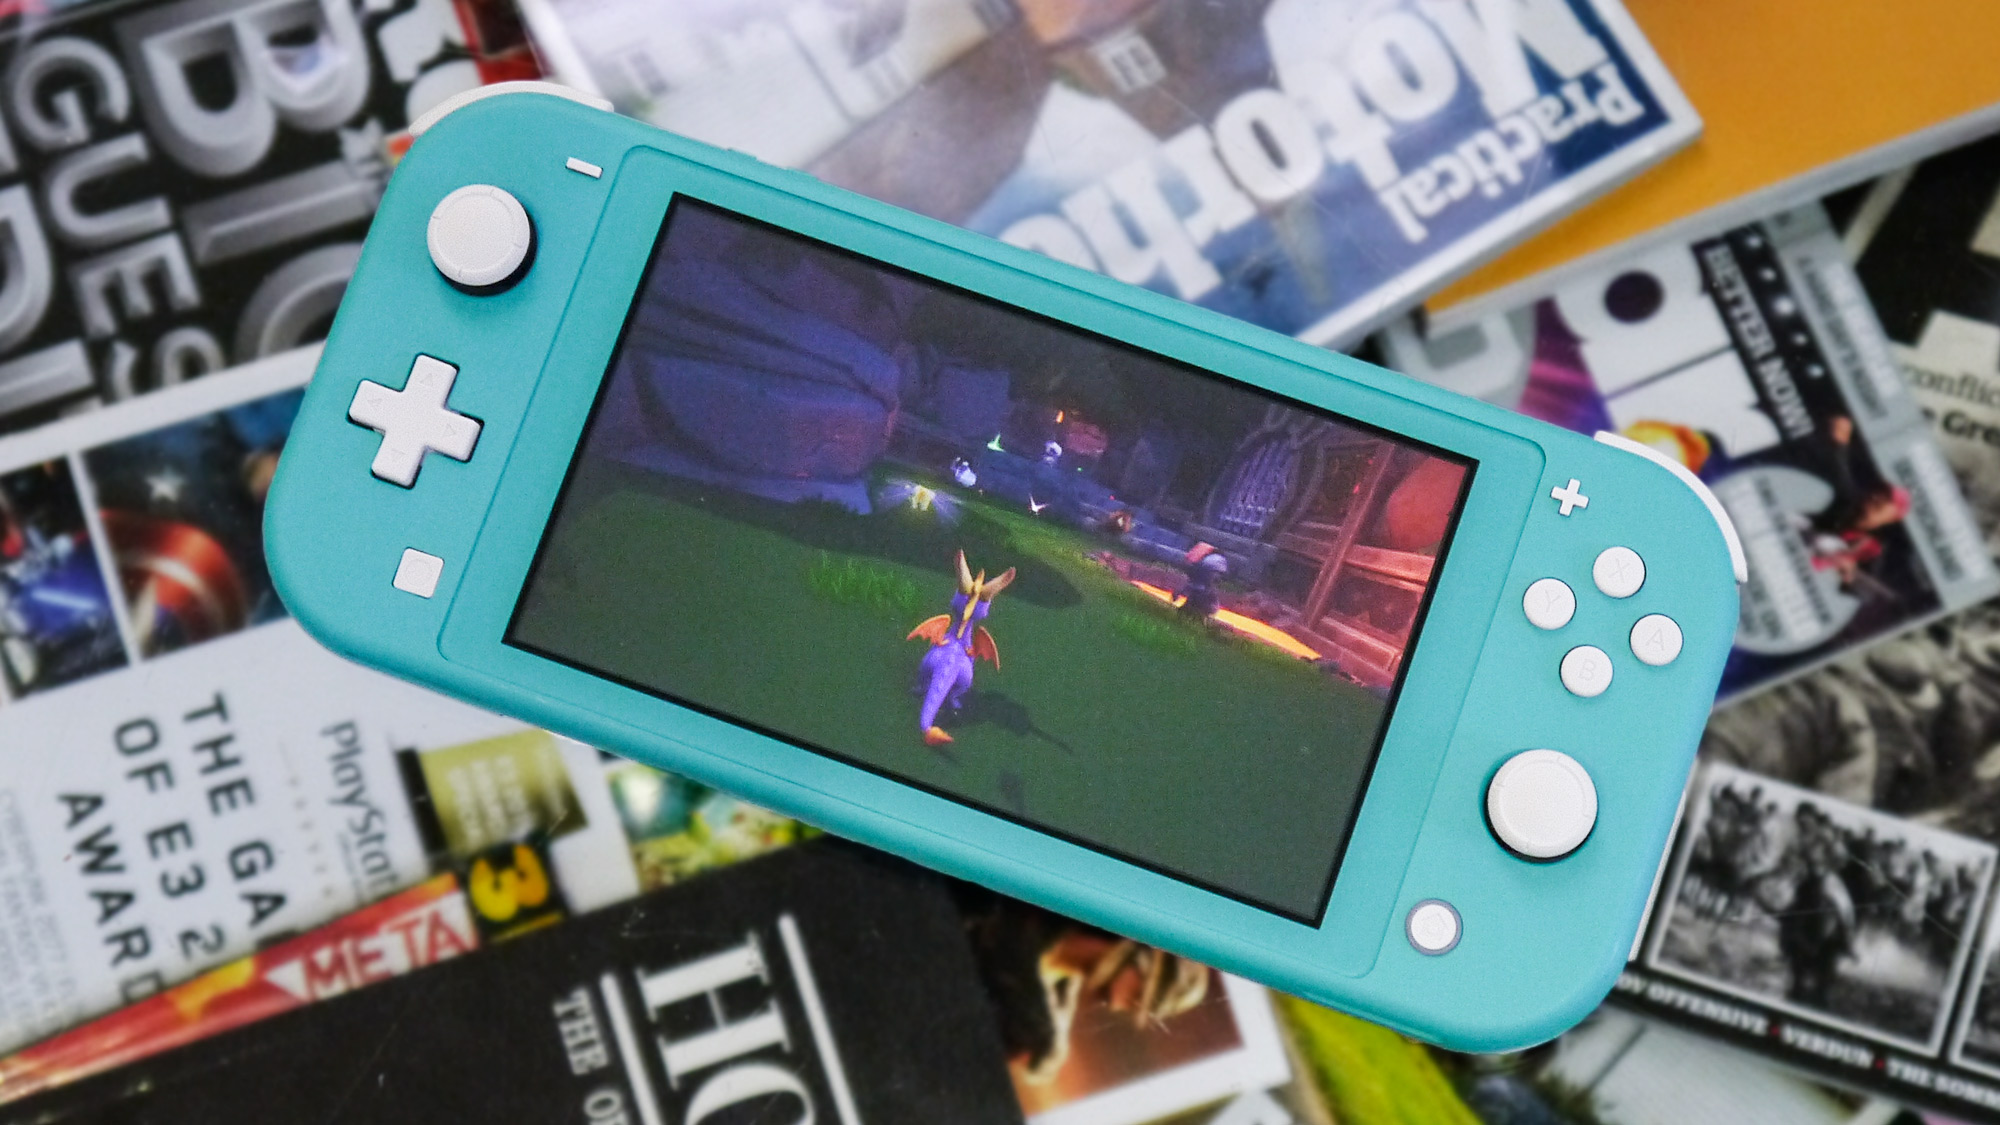 somehow,-nintendo-switch-outsold-the-ps5-and-xbox-series-x-in-their-launch-month